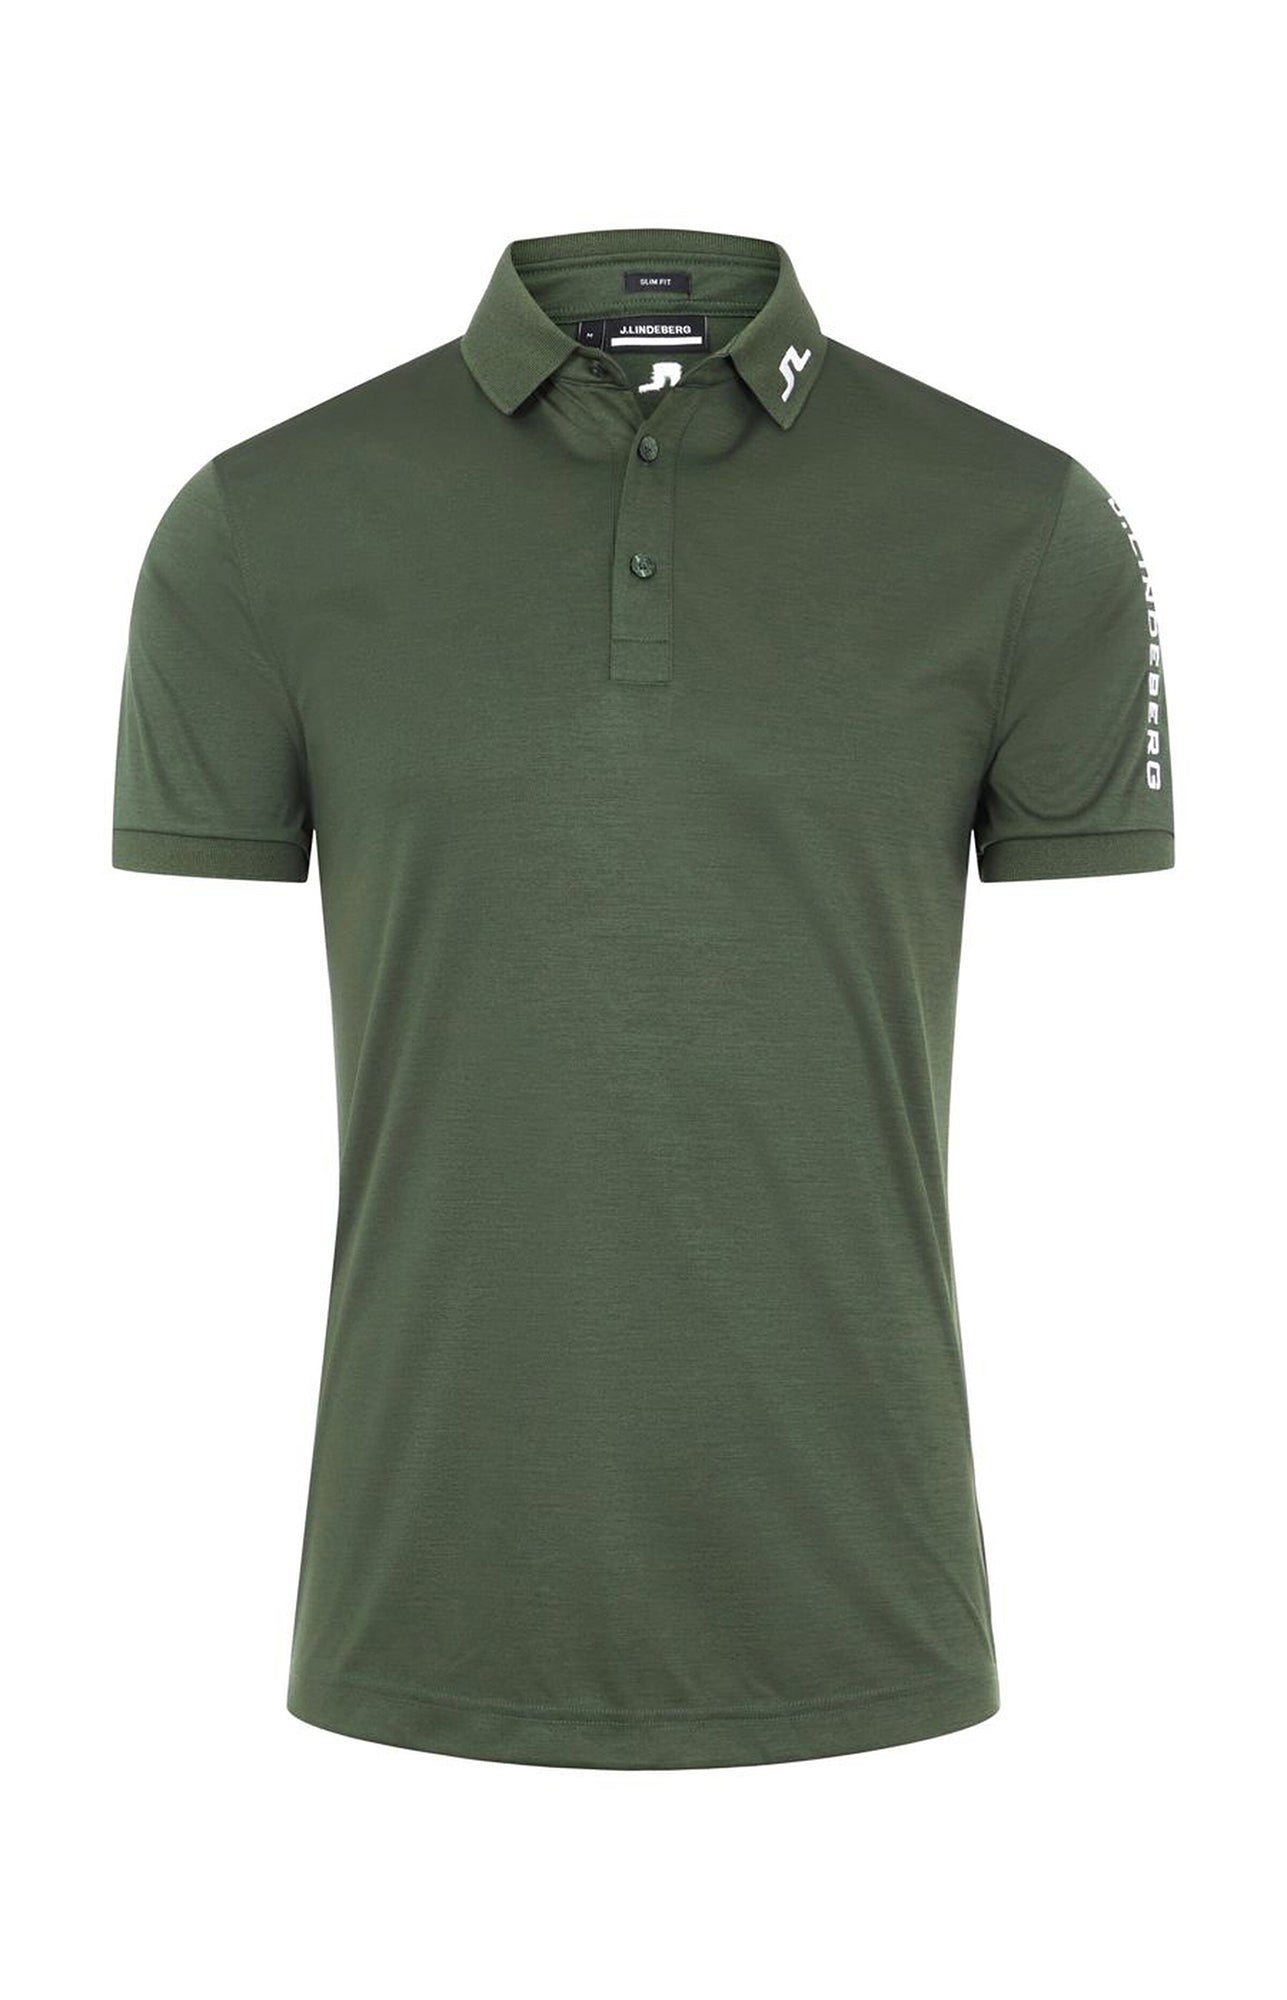 제이린드버그 투어 테크 슬림 핏 폴로 J Lindeberg Tour Tech Slim Fit Golf Polo (Thyme Green Melange)